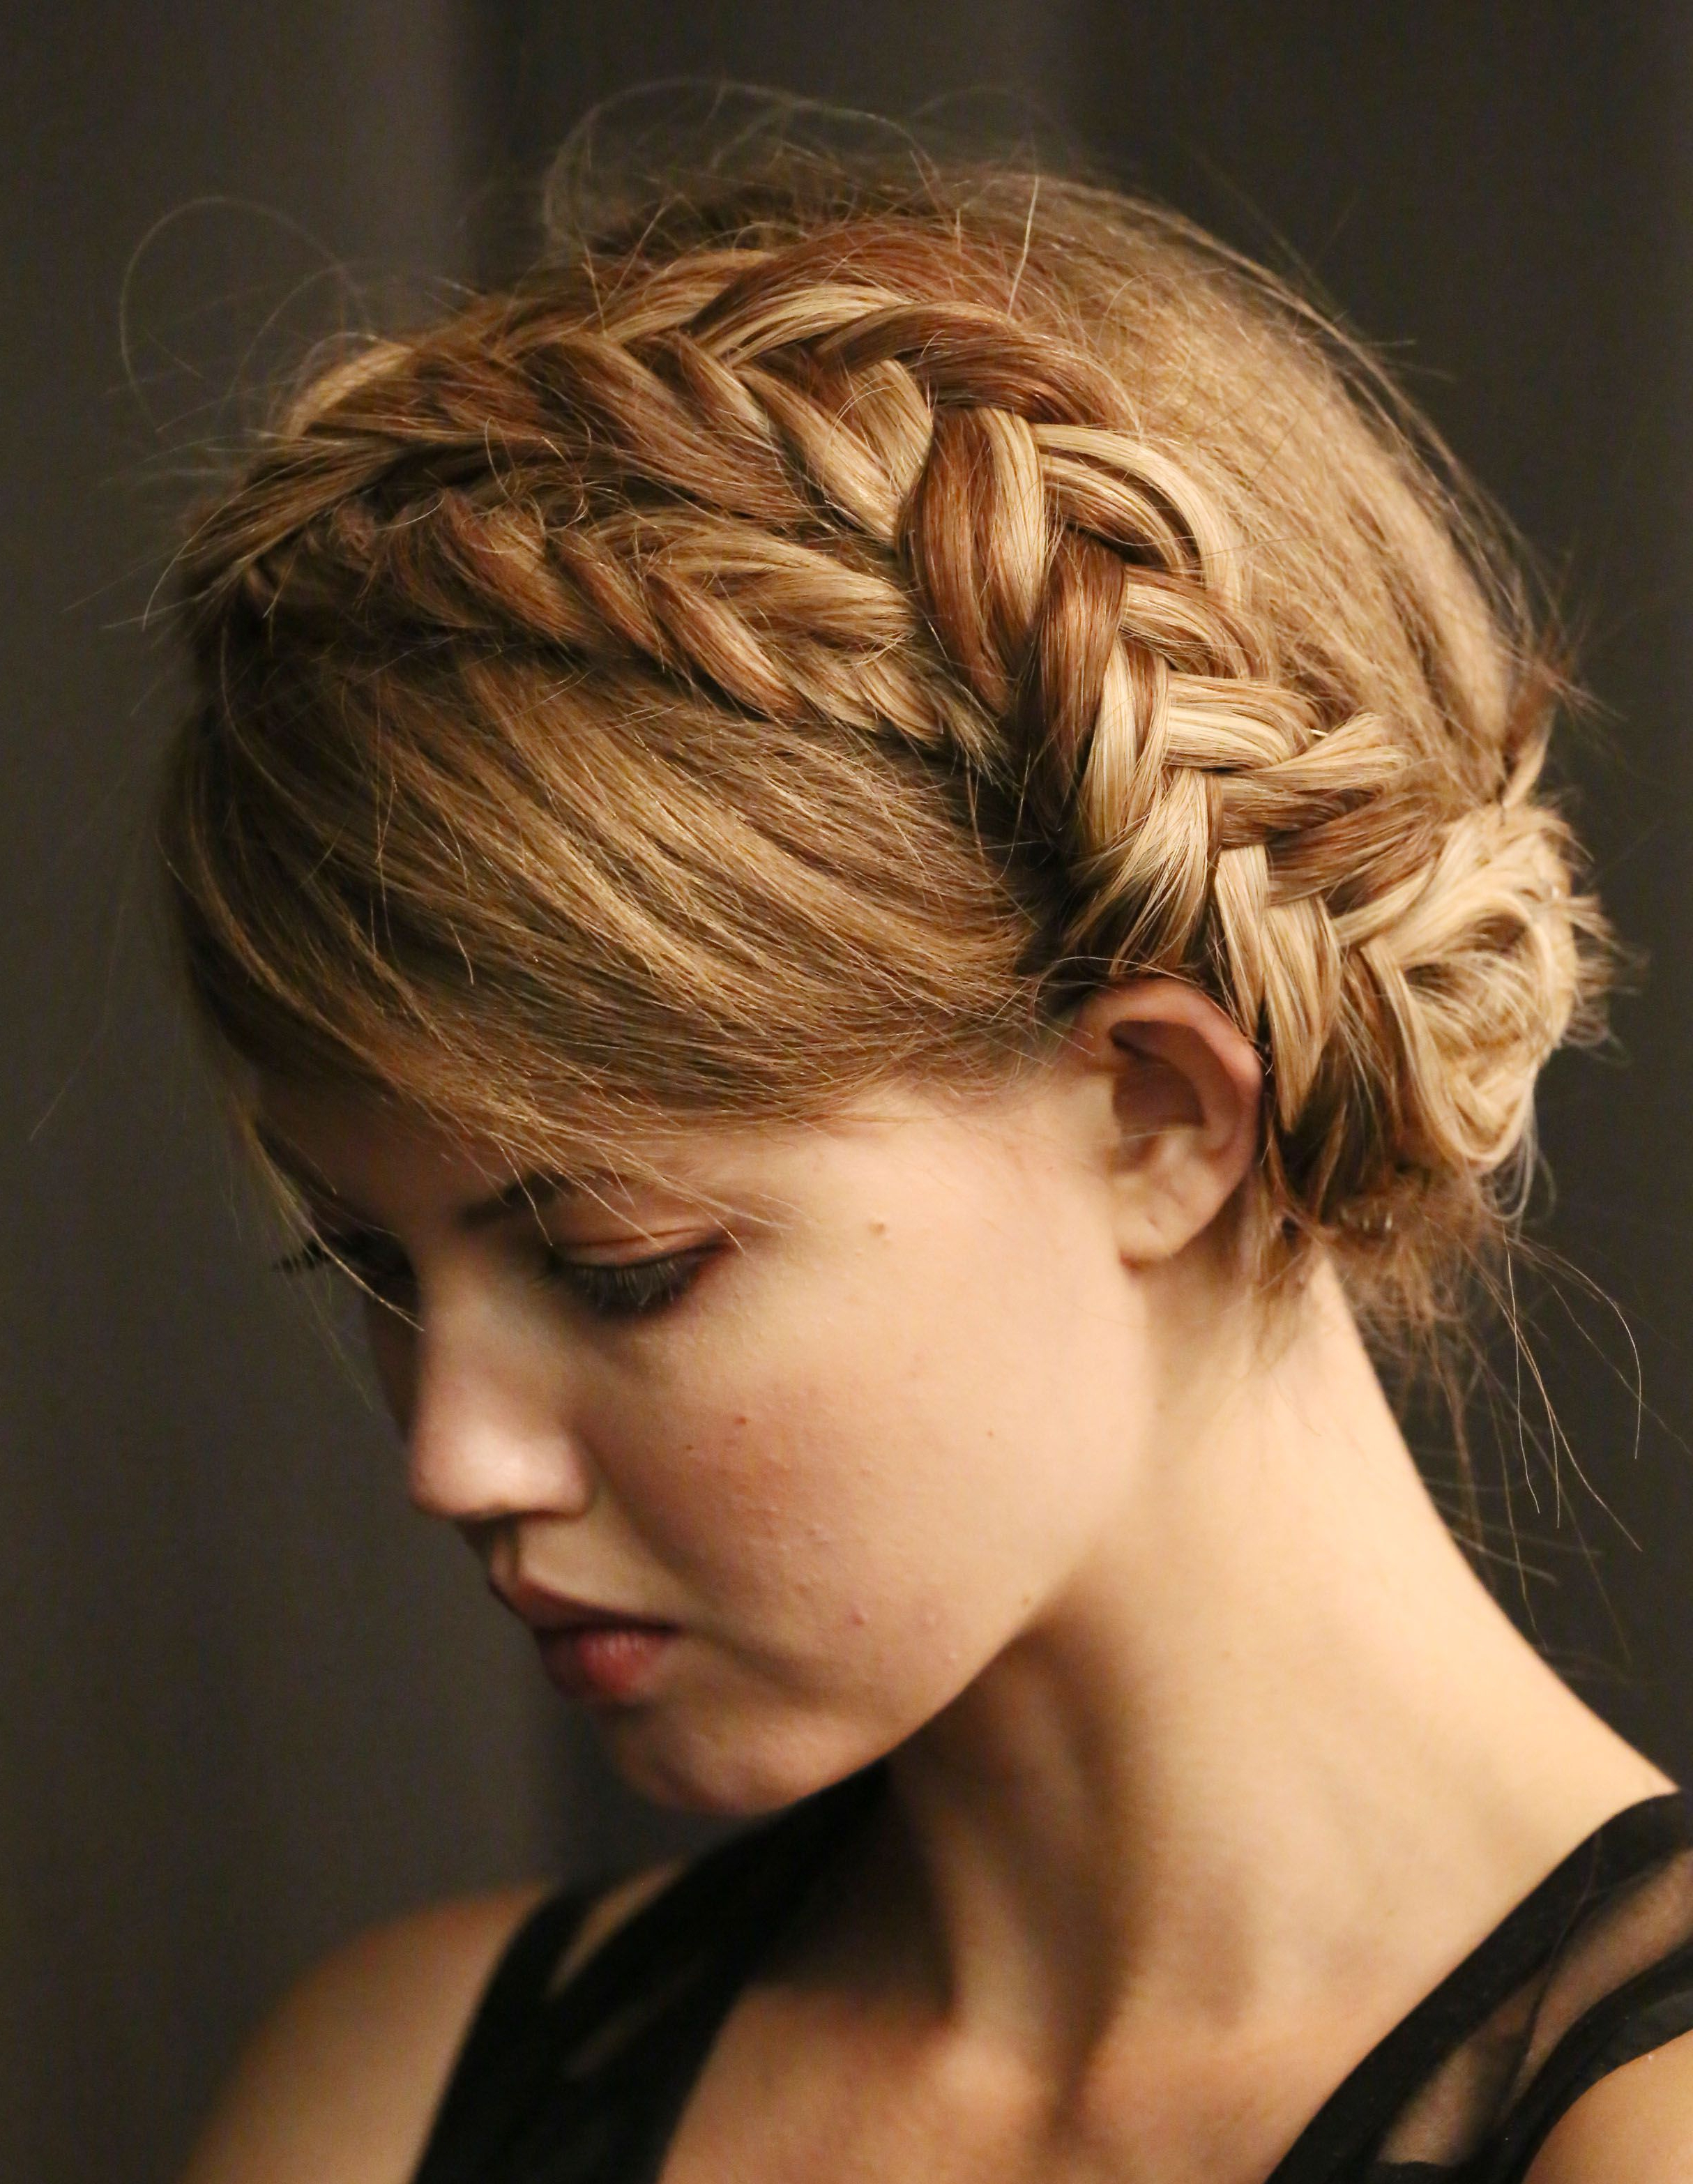 Recent Braid Hairstyles With Braiding Bangs Regarding Crown Braid With Bangs (View 18 of 20)